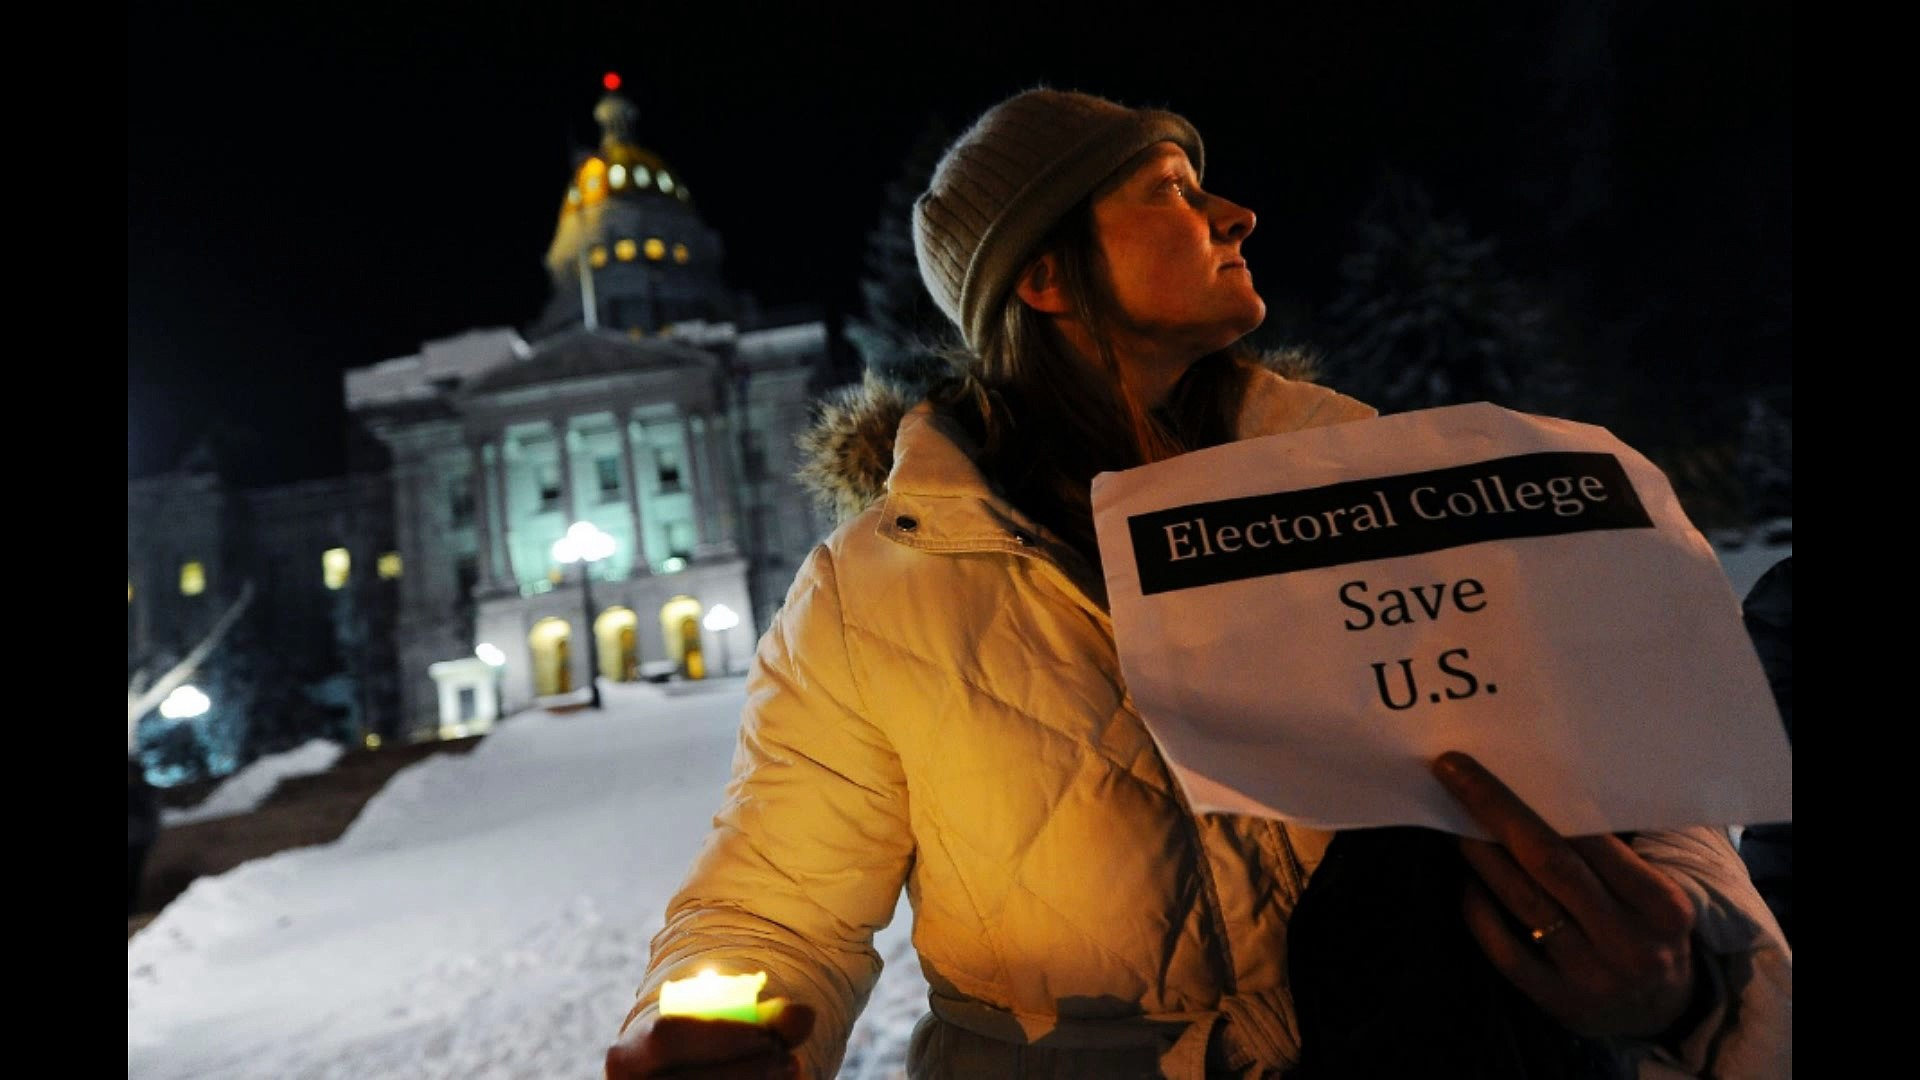 BREAKING NEWS - The electoral college is poised to pick Trump